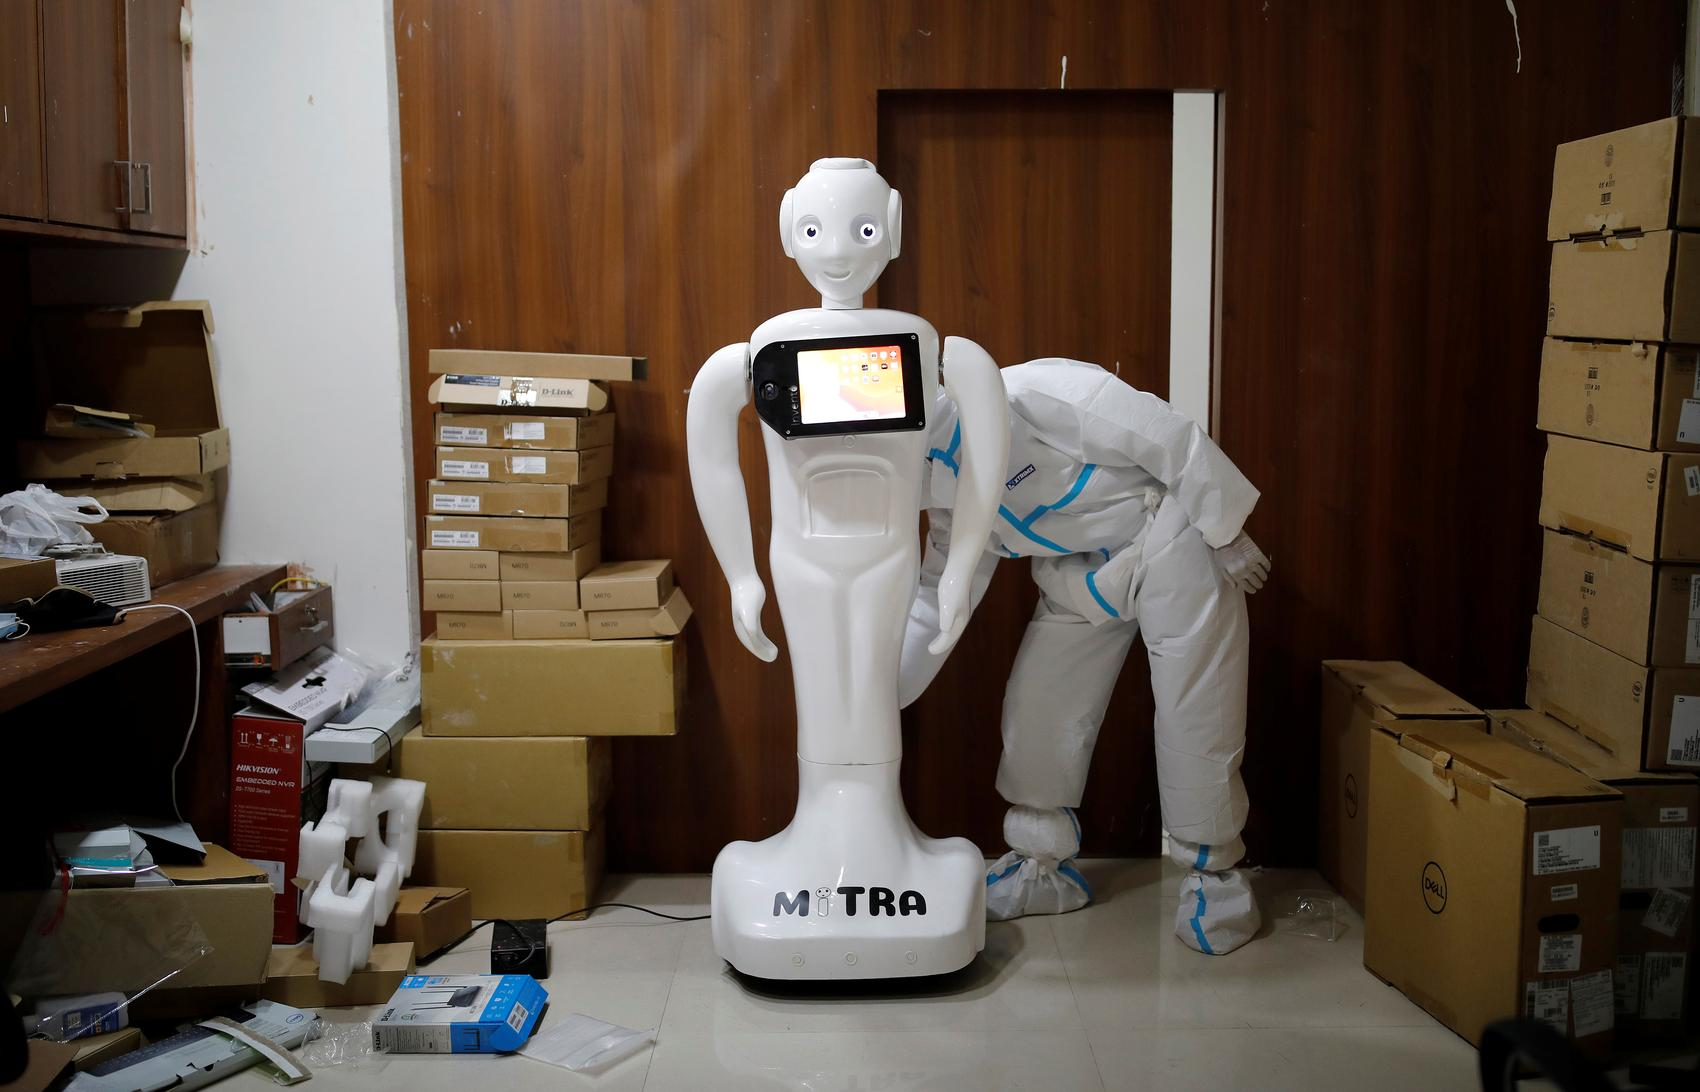 A medical worker puts robot named 'Mitra' , which is used by the patients suffering from the coronavirus disease (COVID-19) to communicate with their relatives, on charge at the Yatharth Super Speciality Hospital in Noida, on the outskirts of New Delhi, India, September 15, 2020.  REUTERS/Adnan Abidi